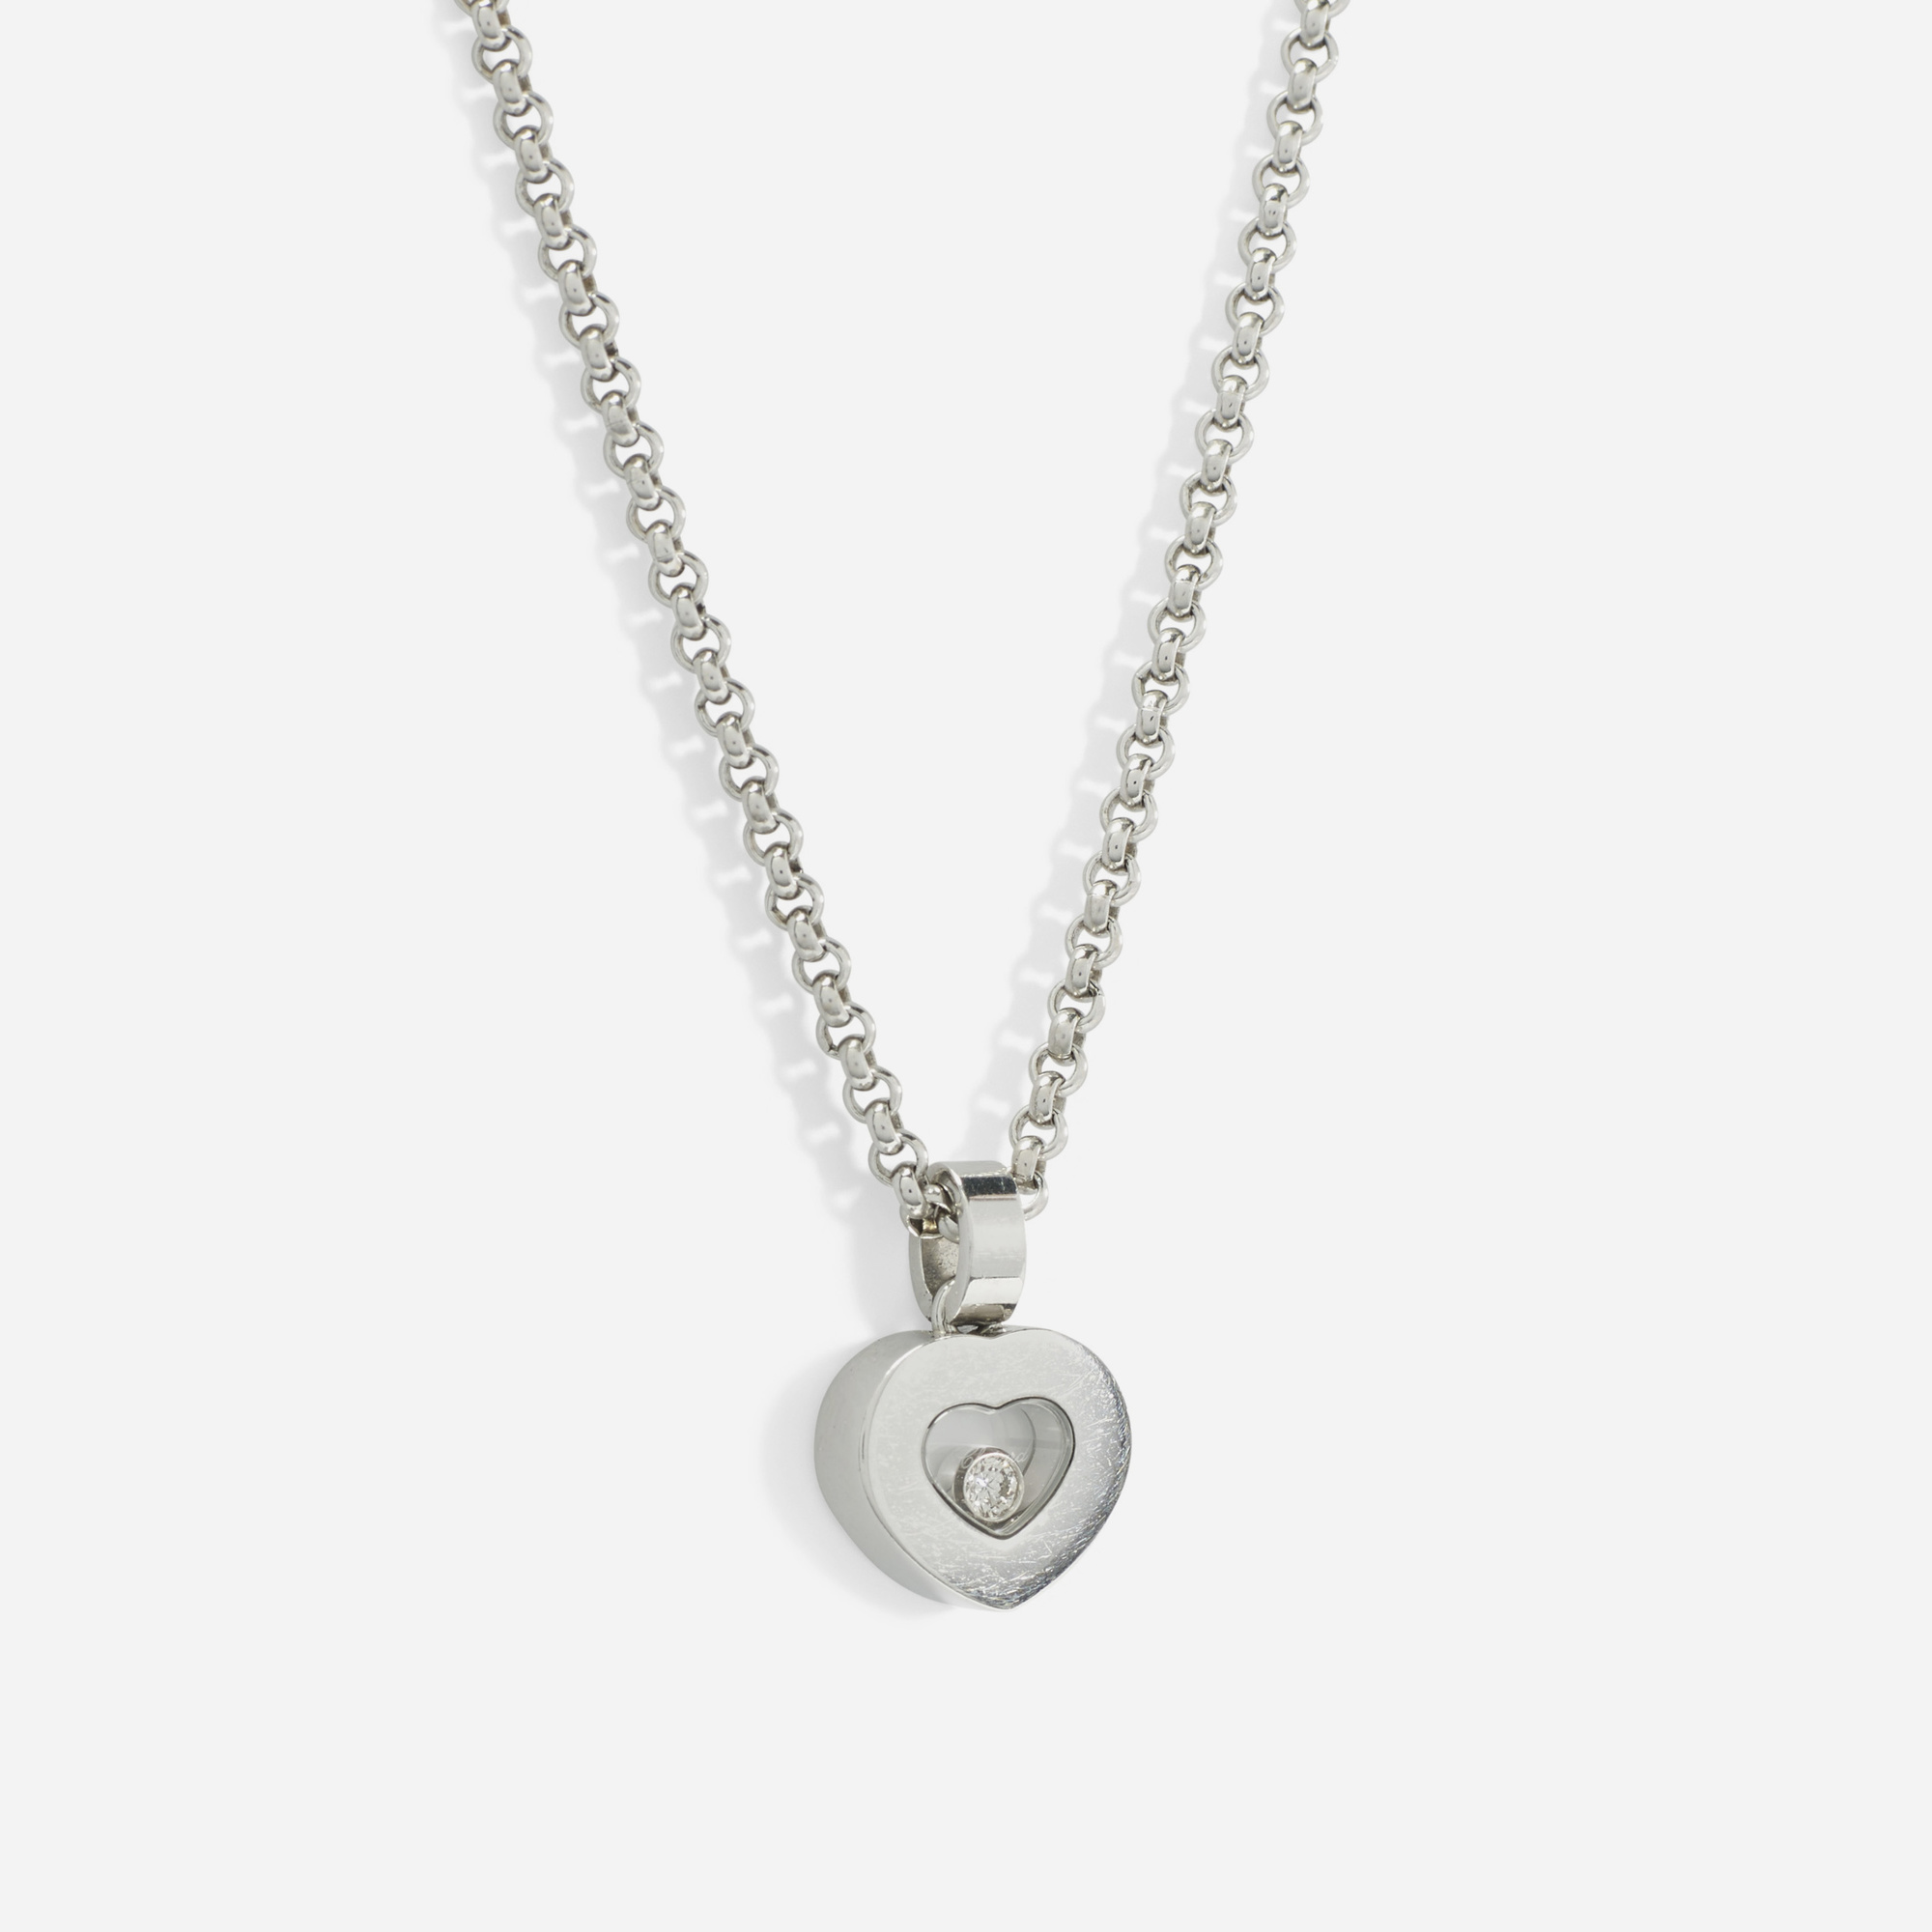 151: Chopard / A gold Happy Diamond Heart necklace (1 of 1)